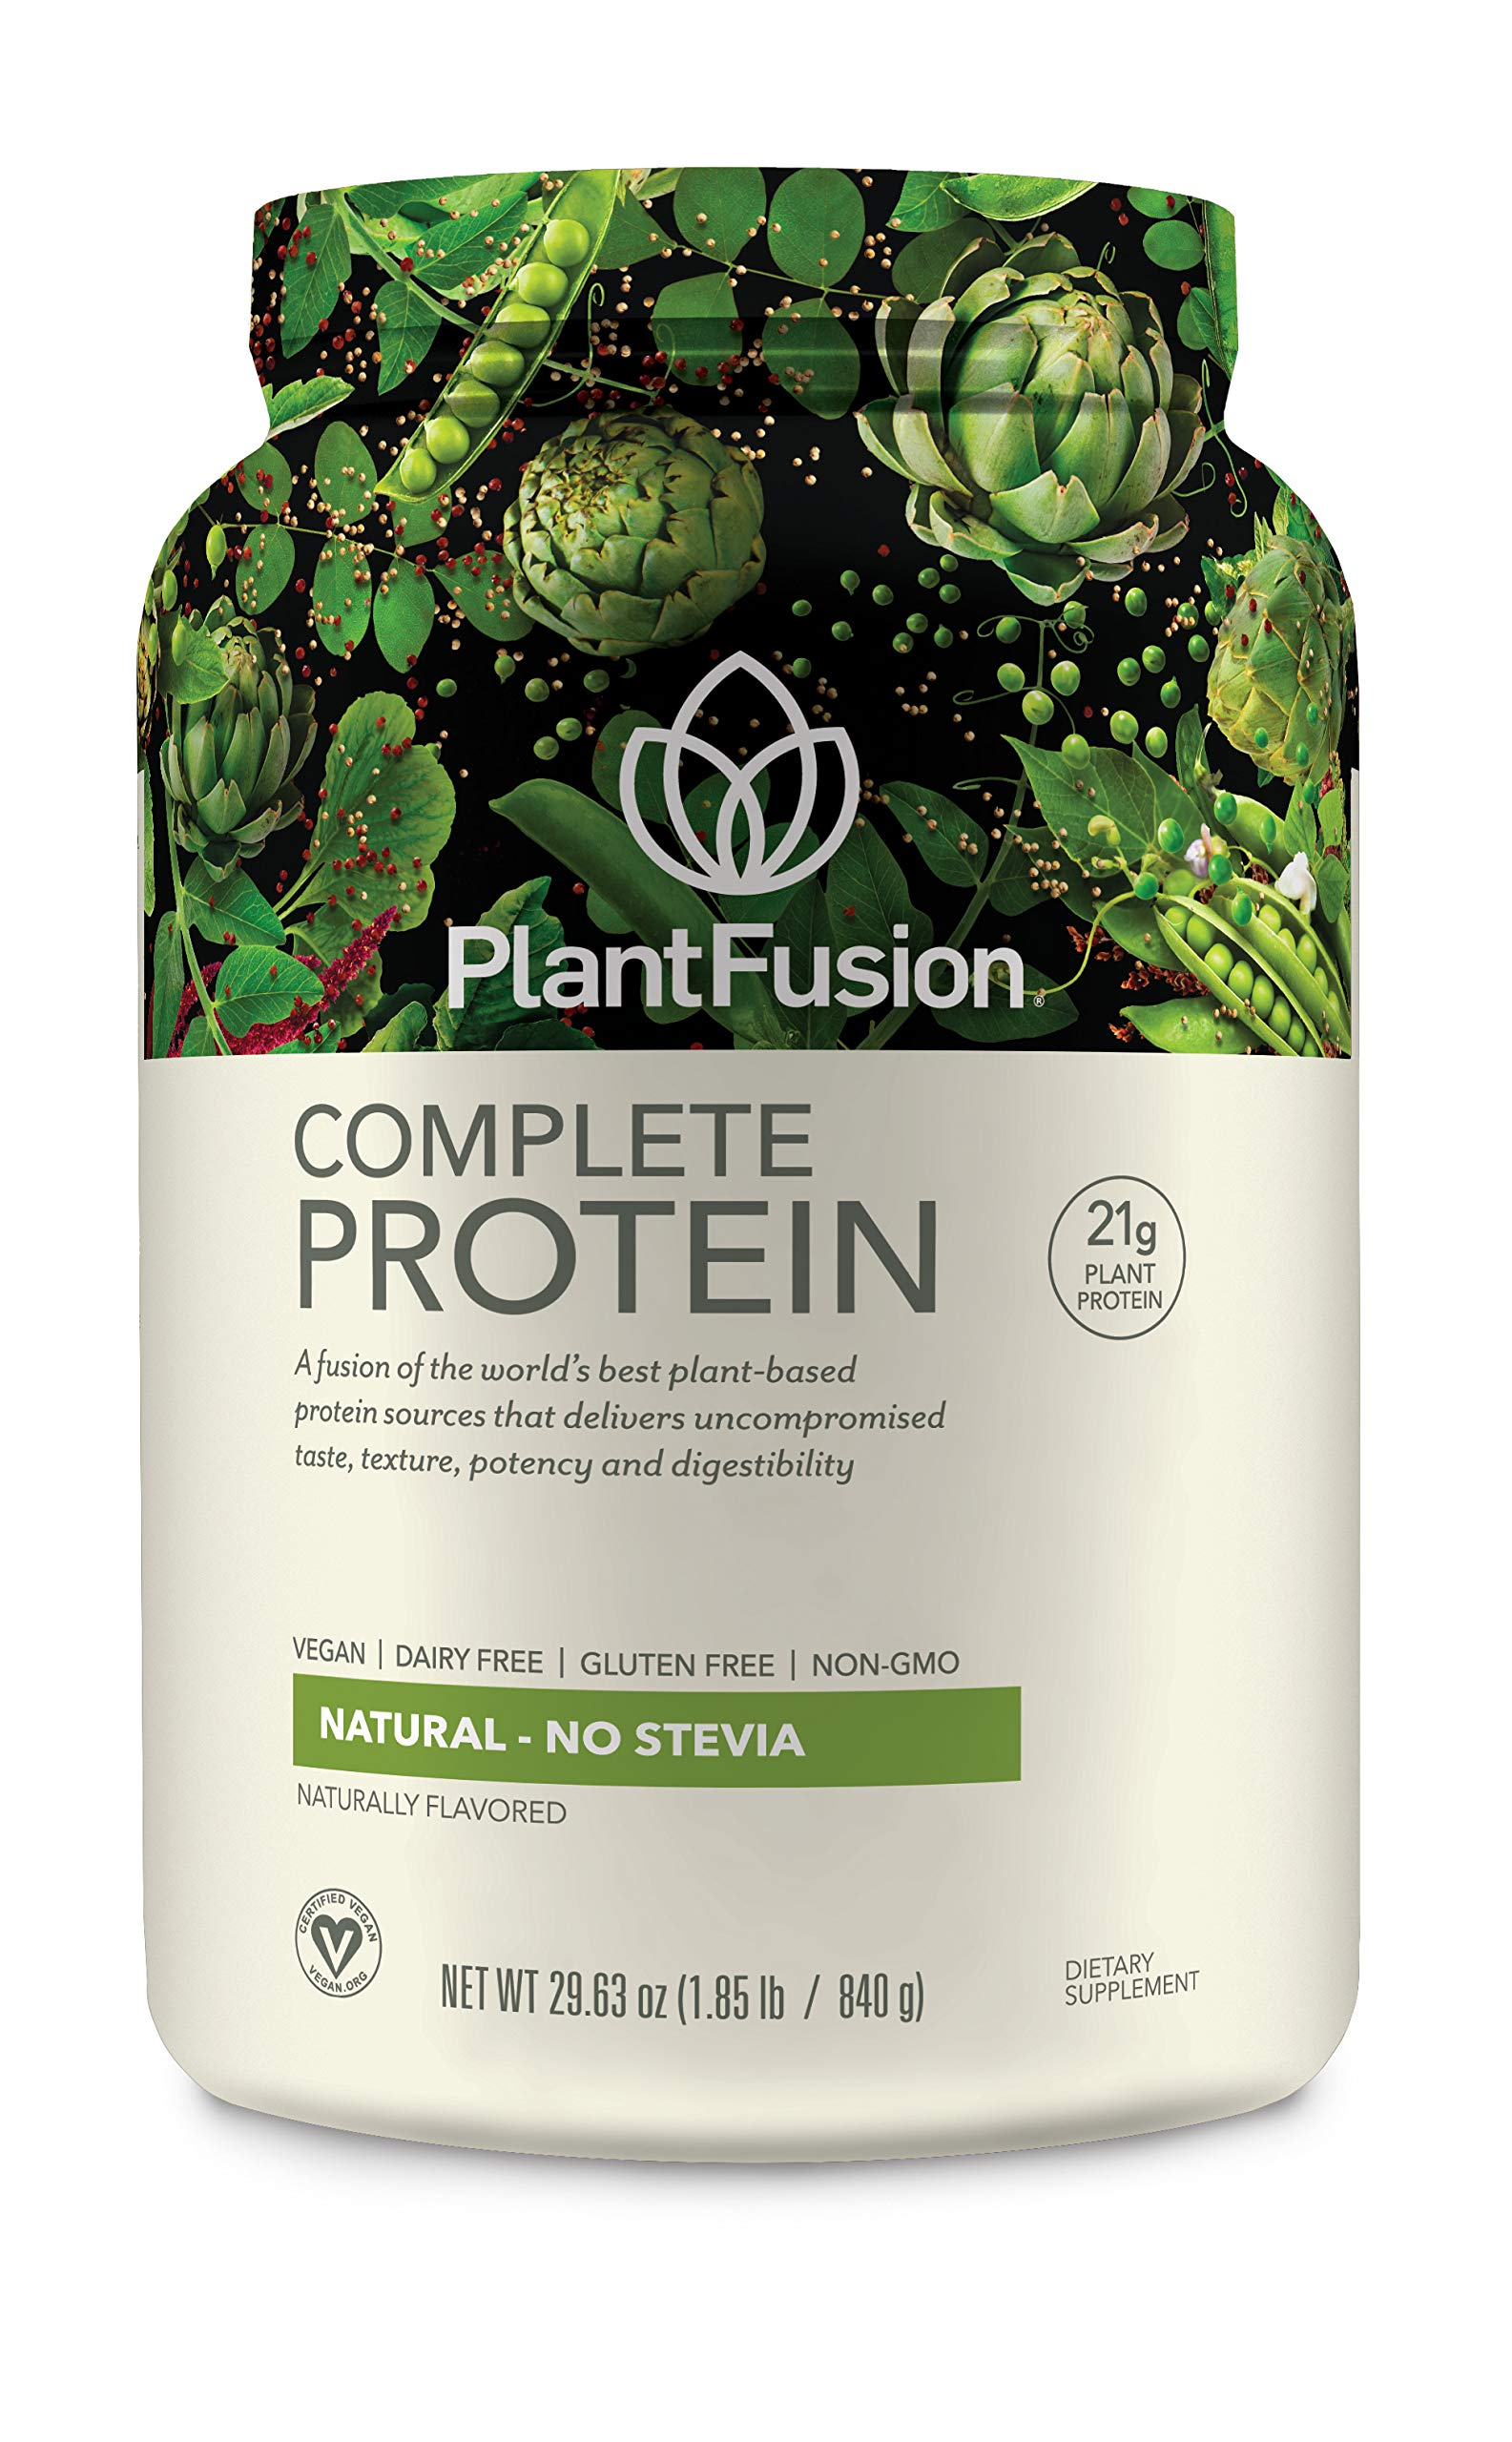 PlantFusion Complete Plant Based Protein Powder, Natural Unflavored, 2 Lb Tub, 30 Servings, 1 Count, Gluten Free, Vegan, Non-GMO, Packaging May Vary